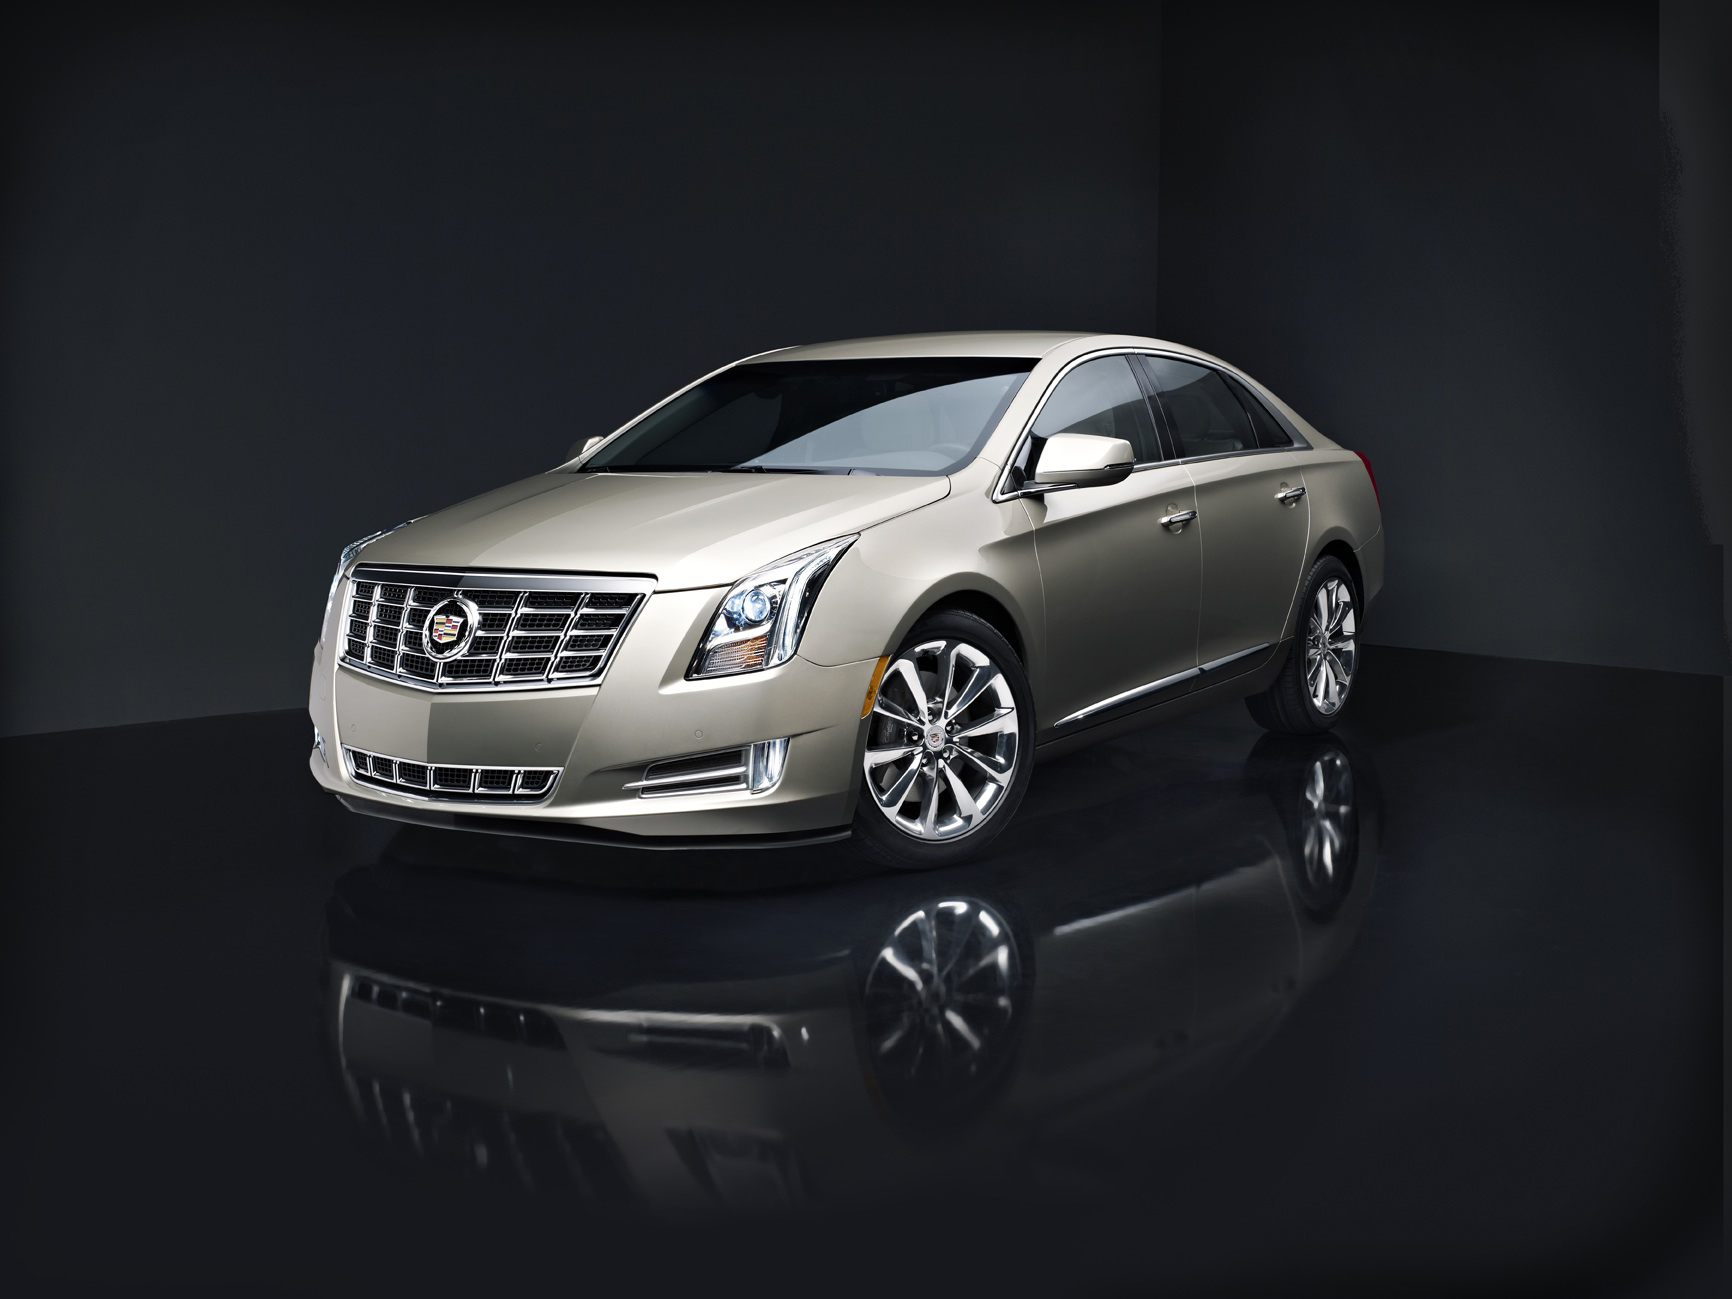 d preview power articles car j previews cadillac elr cars new